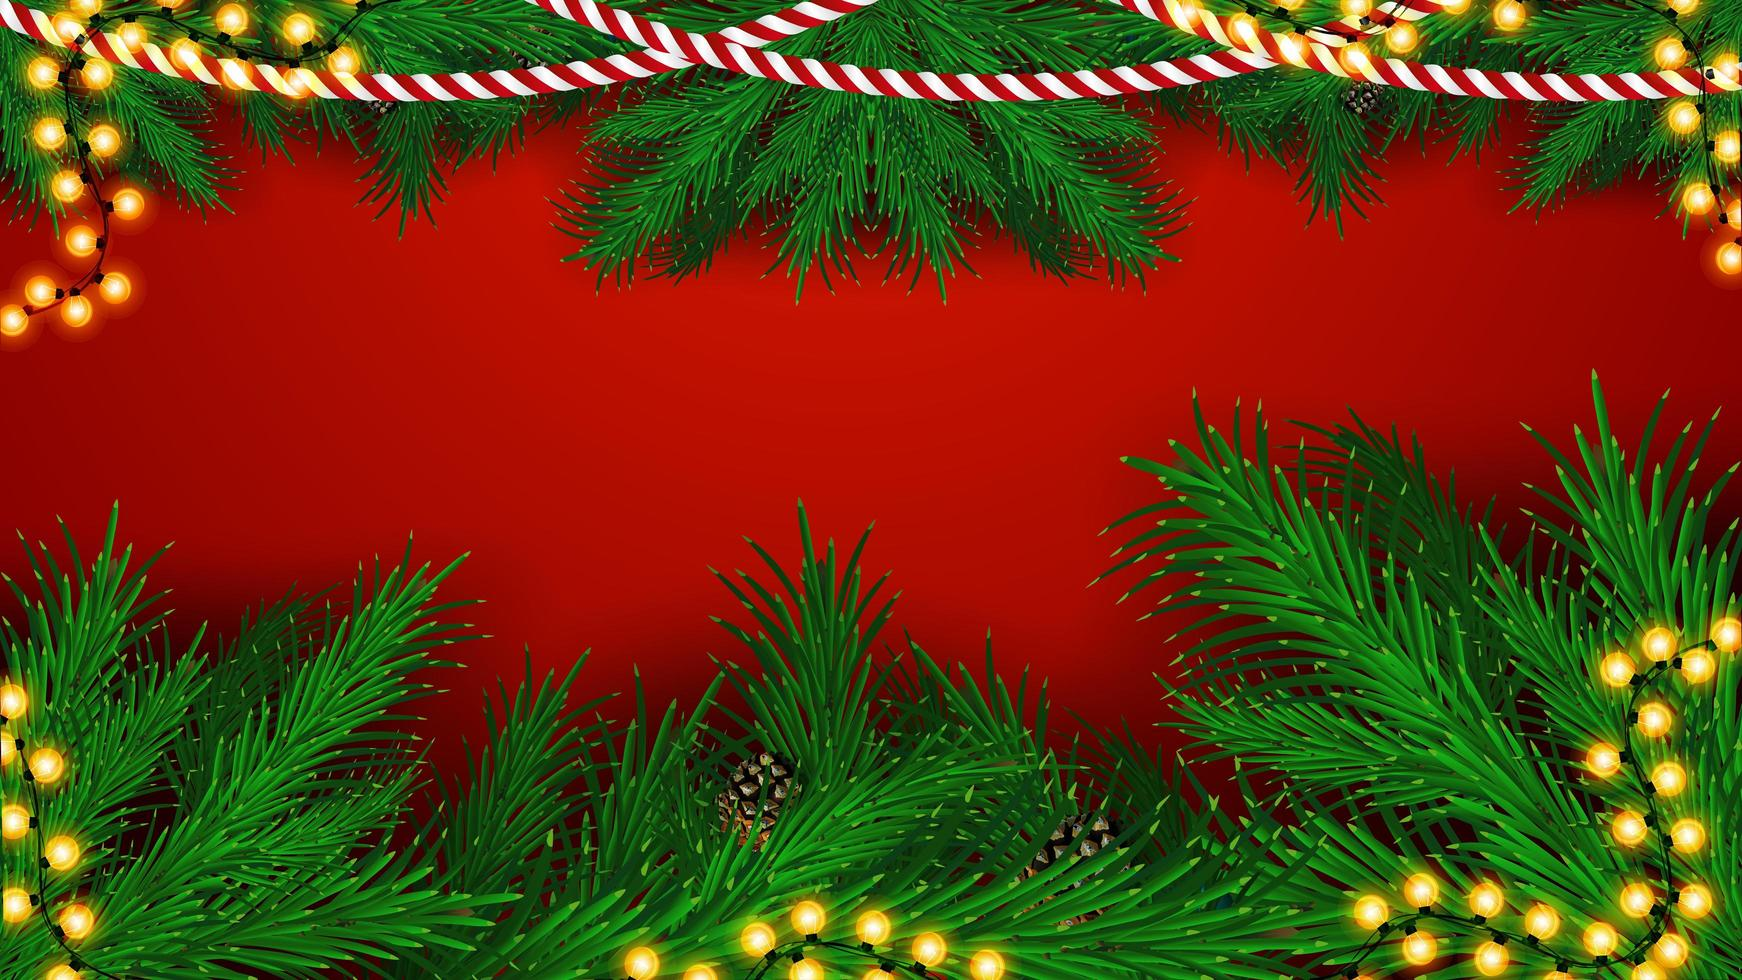 Christmas red background with frame of Christmas tree branches and garlands, blank for your art vector